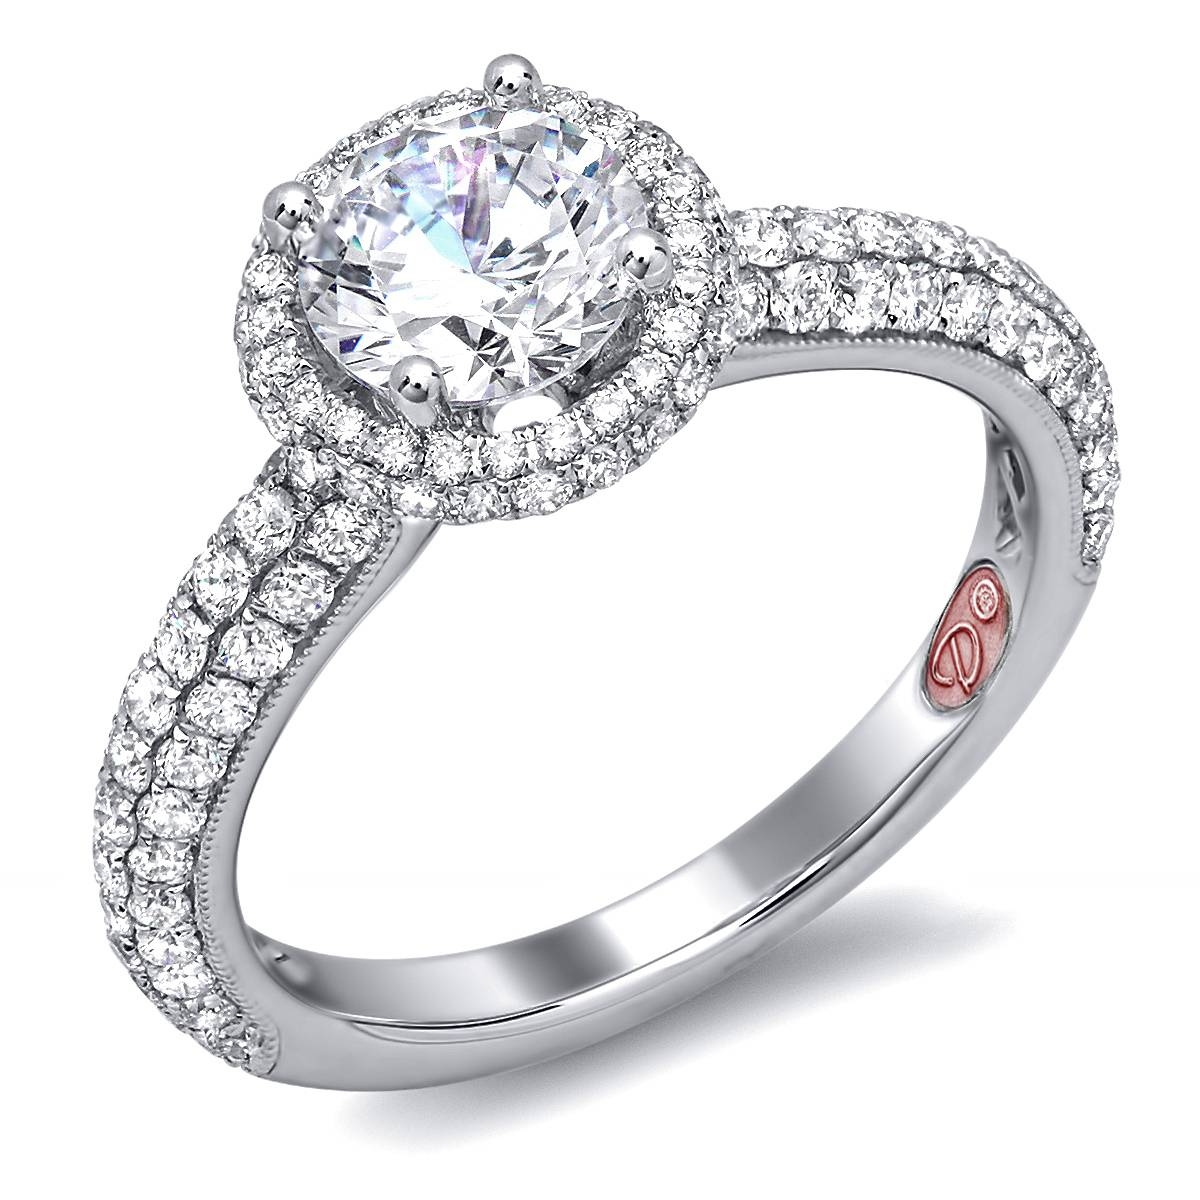 Round | Demarco Bridal Jewelry Official Blog Intended For Wedding Rings With Diamonds All The Way Around (View 8 of 15)